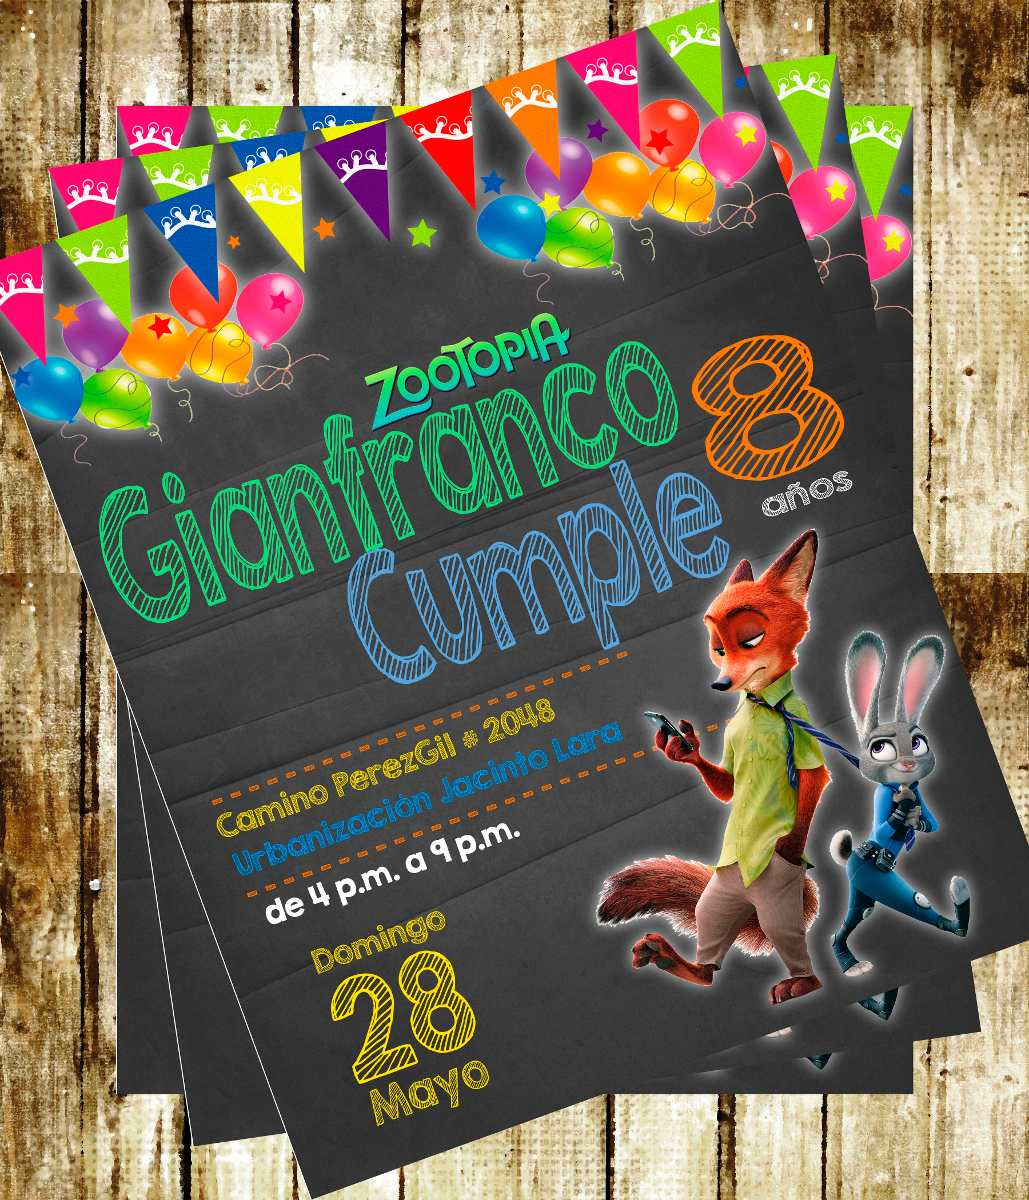 Invitacion De Cumpleanos Zootopia Disney Photoshop Bs 262 44 En